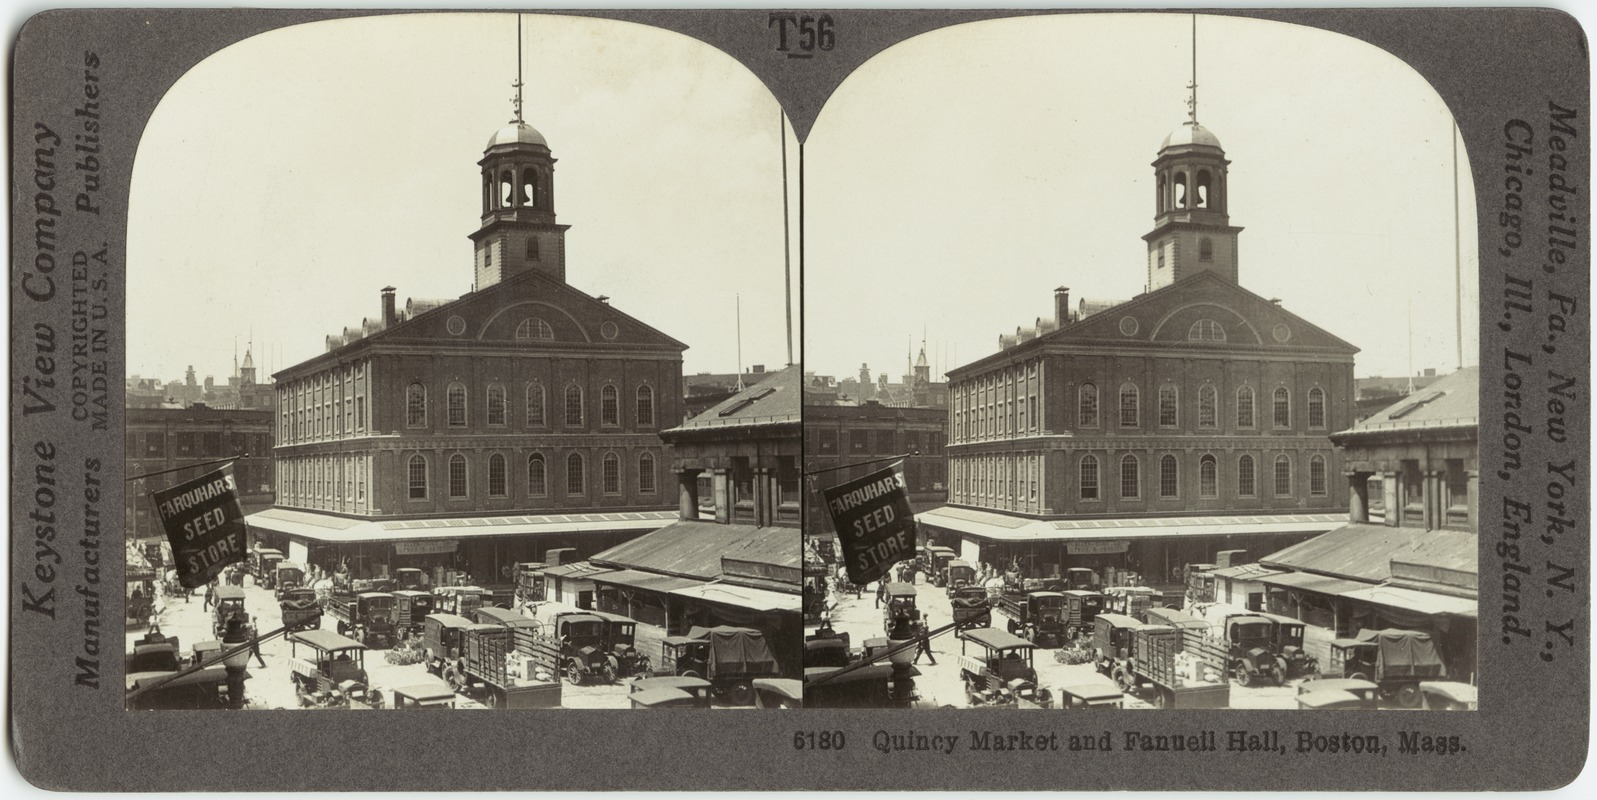 Quincy Market and Fanueil [sic] Hall, Boston, Mass